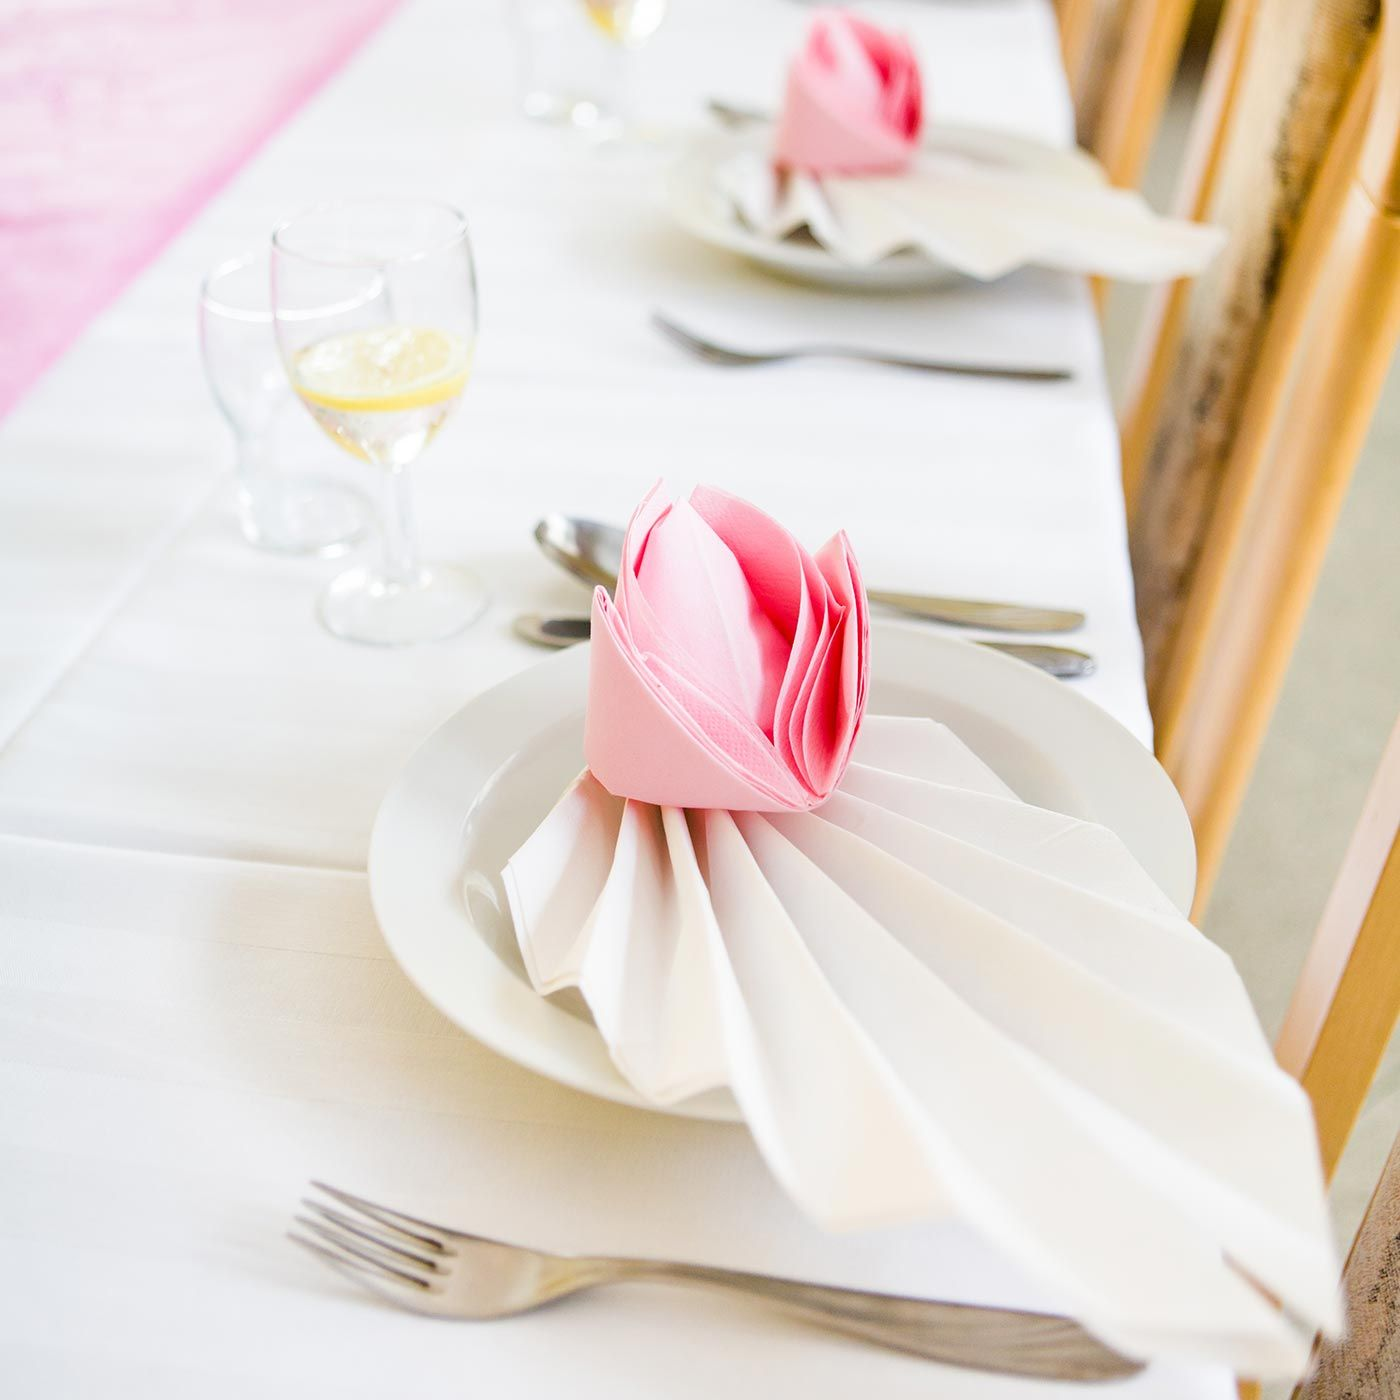 servietten falten als rose hochzeit pinterest wedding napkin folding and napkins. Black Bedroom Furniture Sets. Home Design Ideas